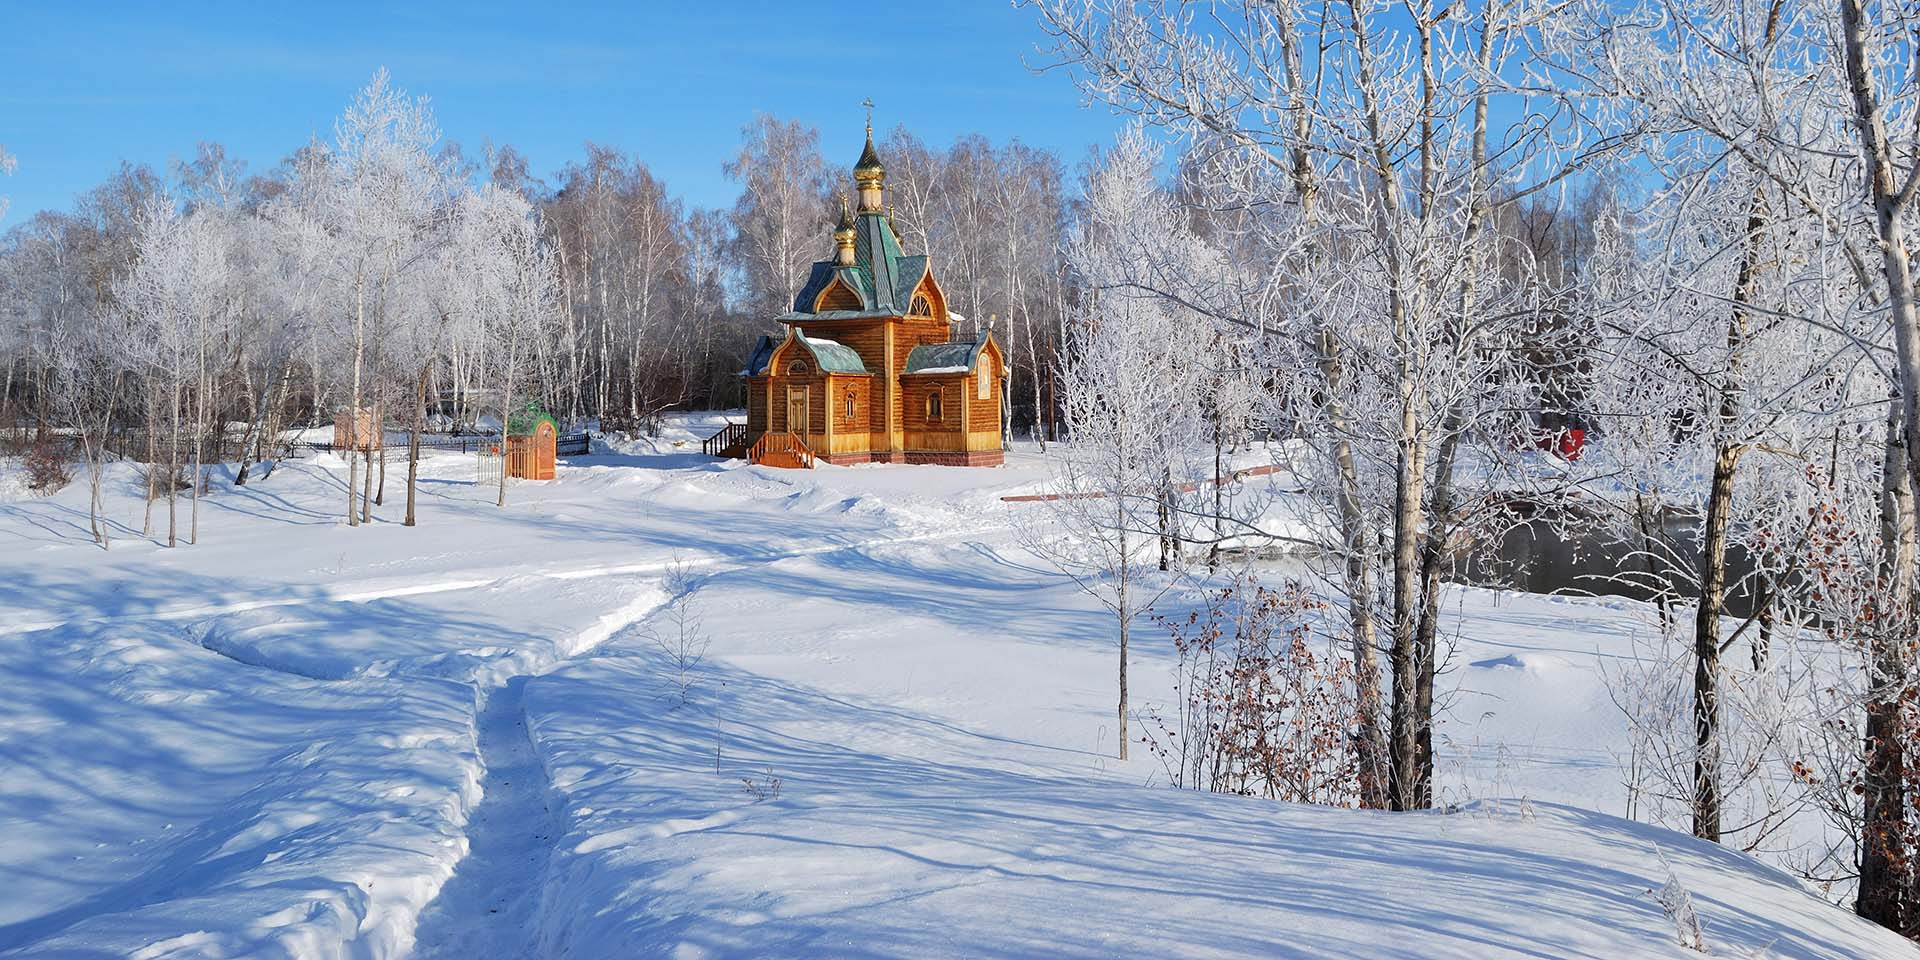 Winter Travel Season for South Siberia Approaches